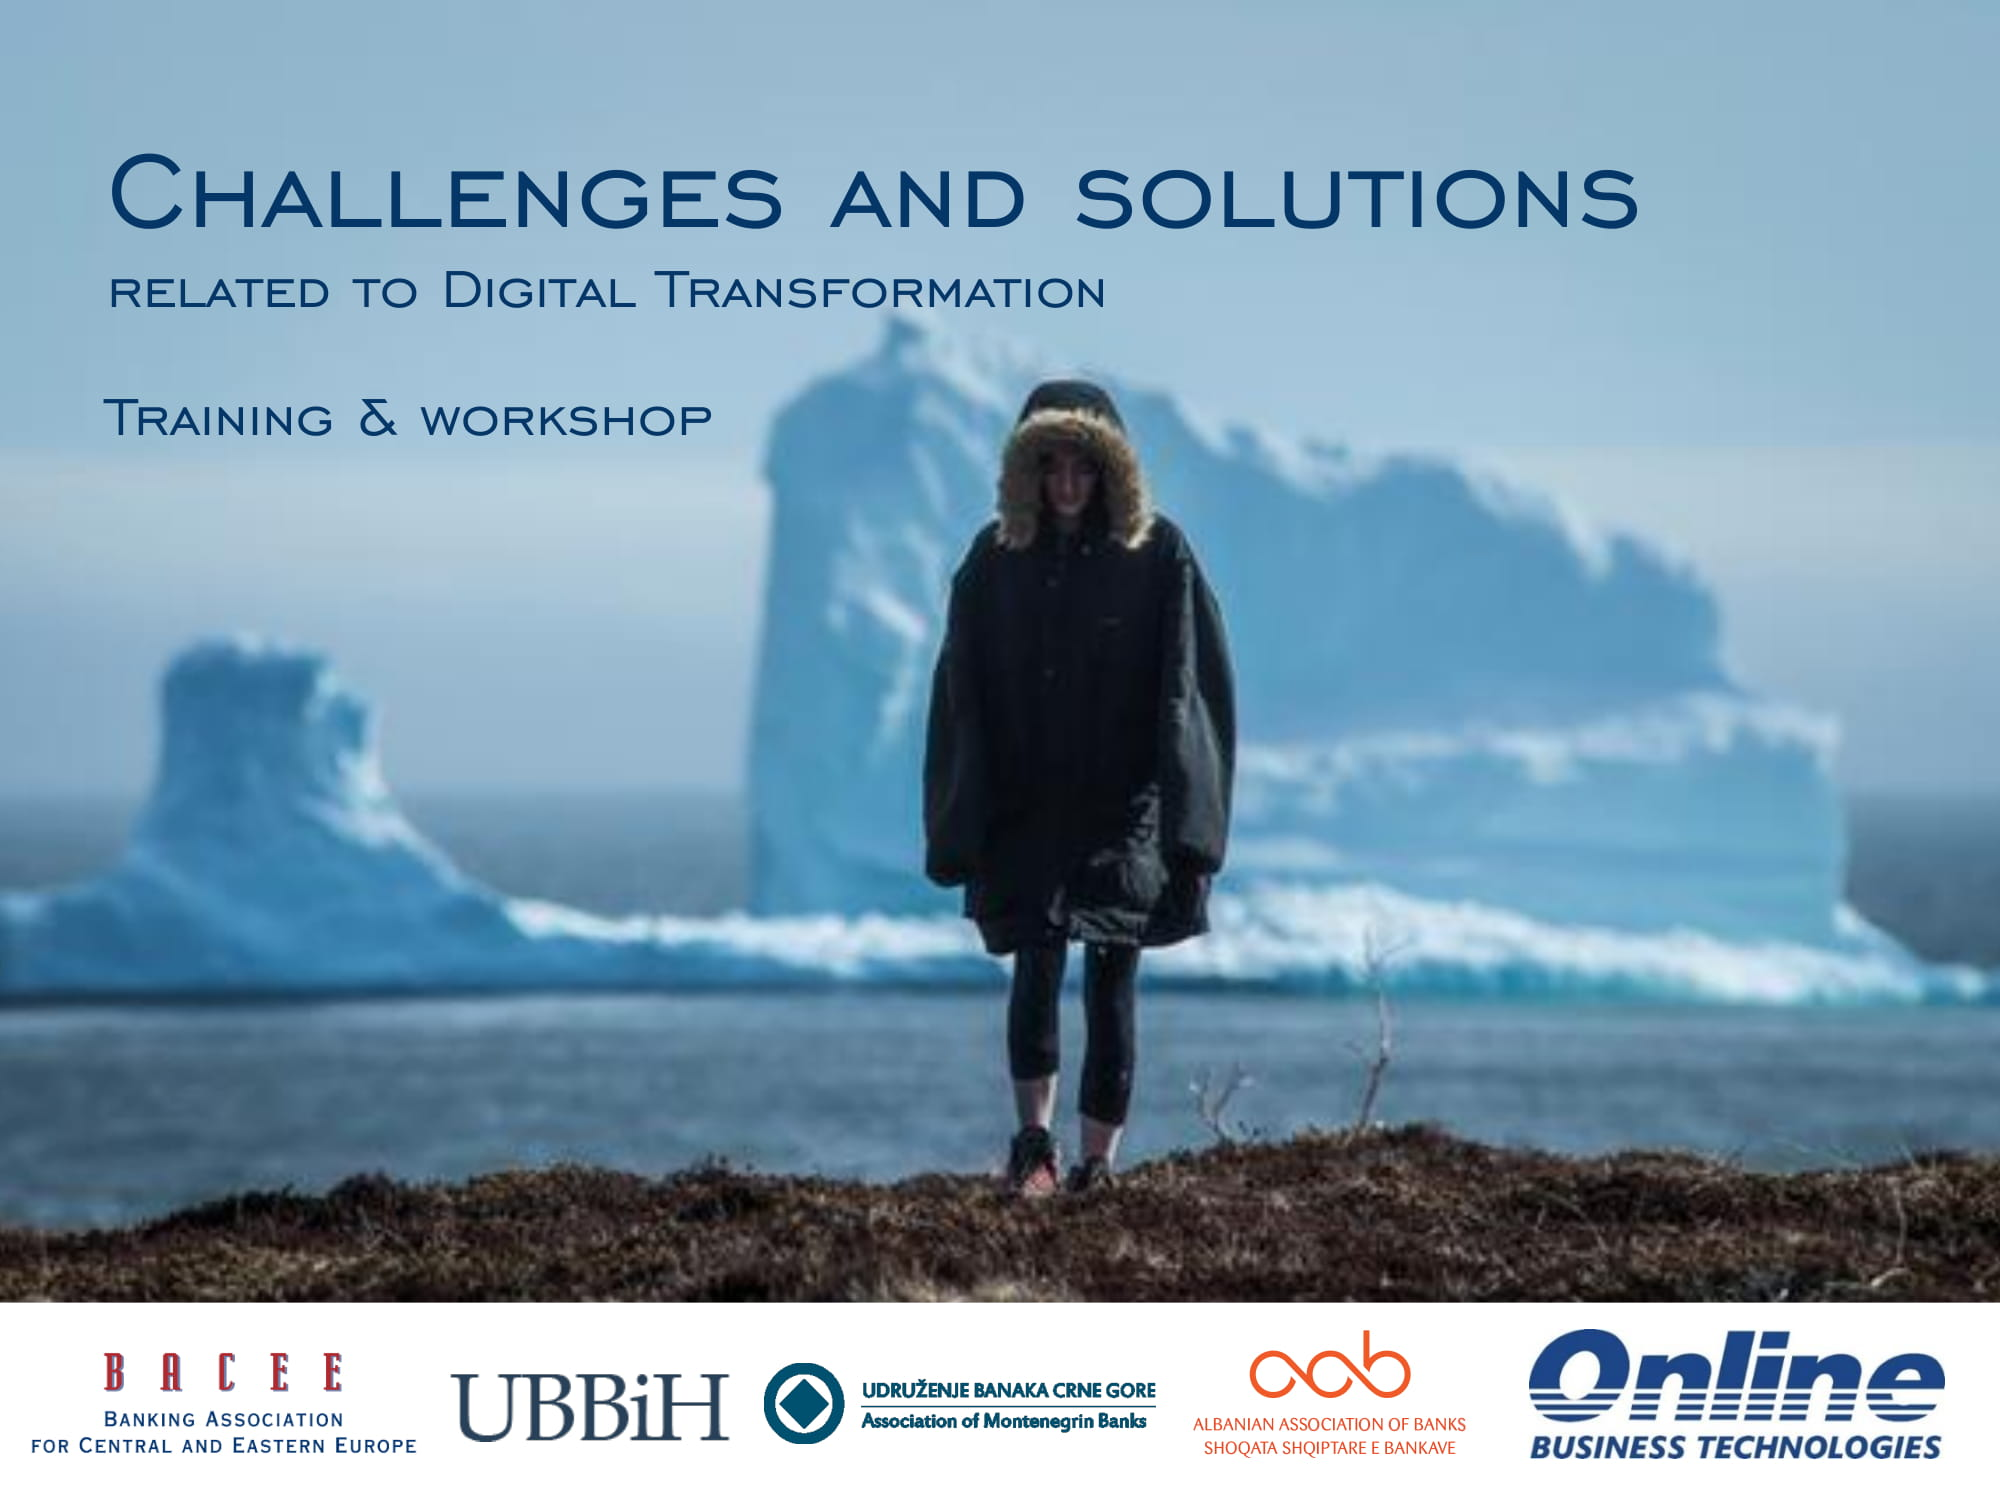 Challenges and solutions related to Digital Transformation